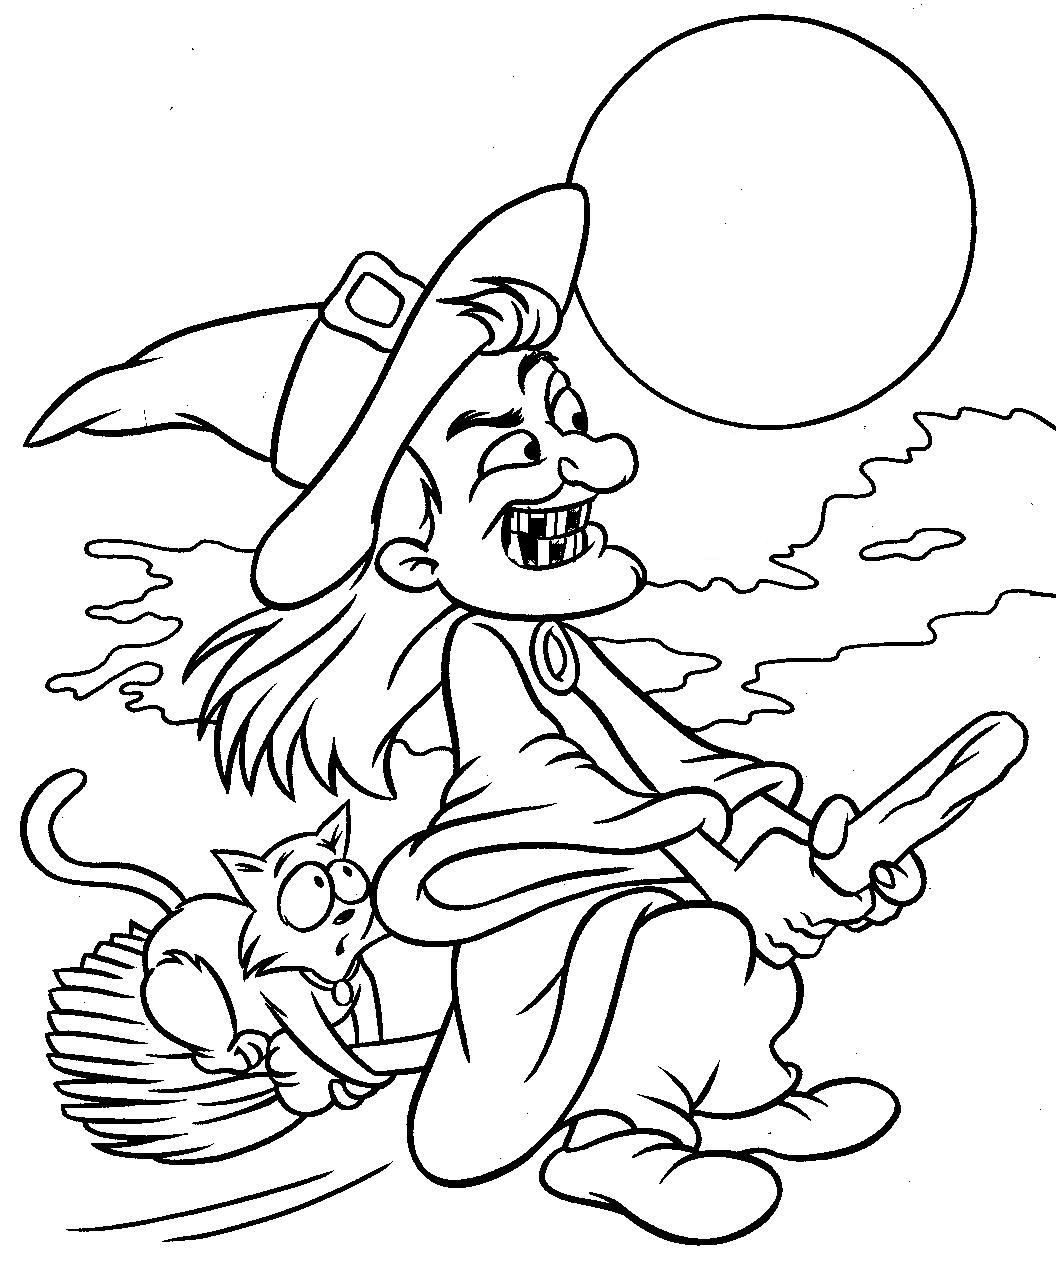 Halloween coloring pages online scary - Itches Riding Broomsticks Together Cat Coloring Pages For Kids Printable Magic Wizards And Witches Coloring Pages For Kids